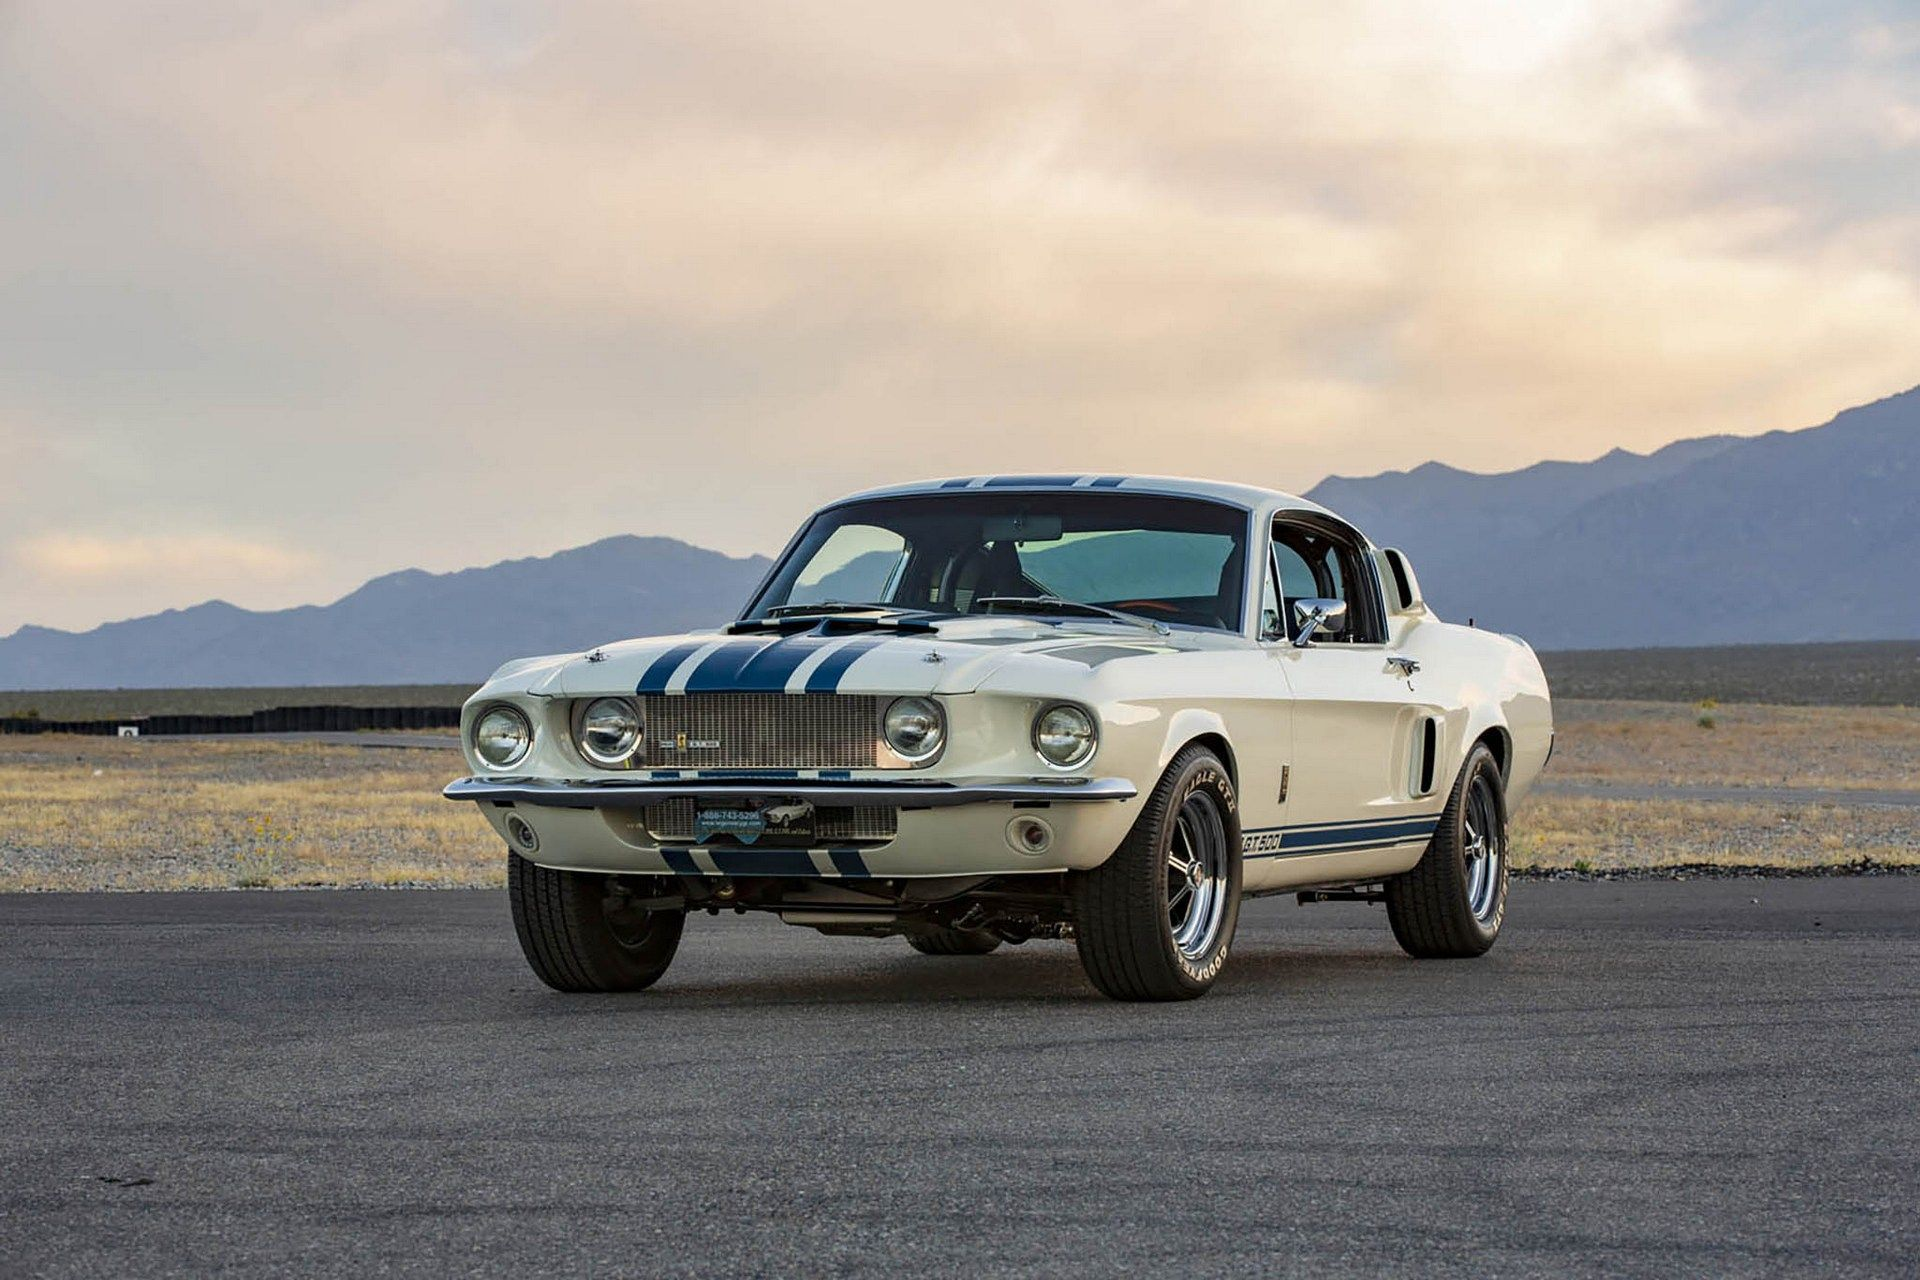 1967 ford shelby gt500 super snake continuation model packs a 7 0 rh pinterest com ford mustang shelby gt500 eleanor a venda